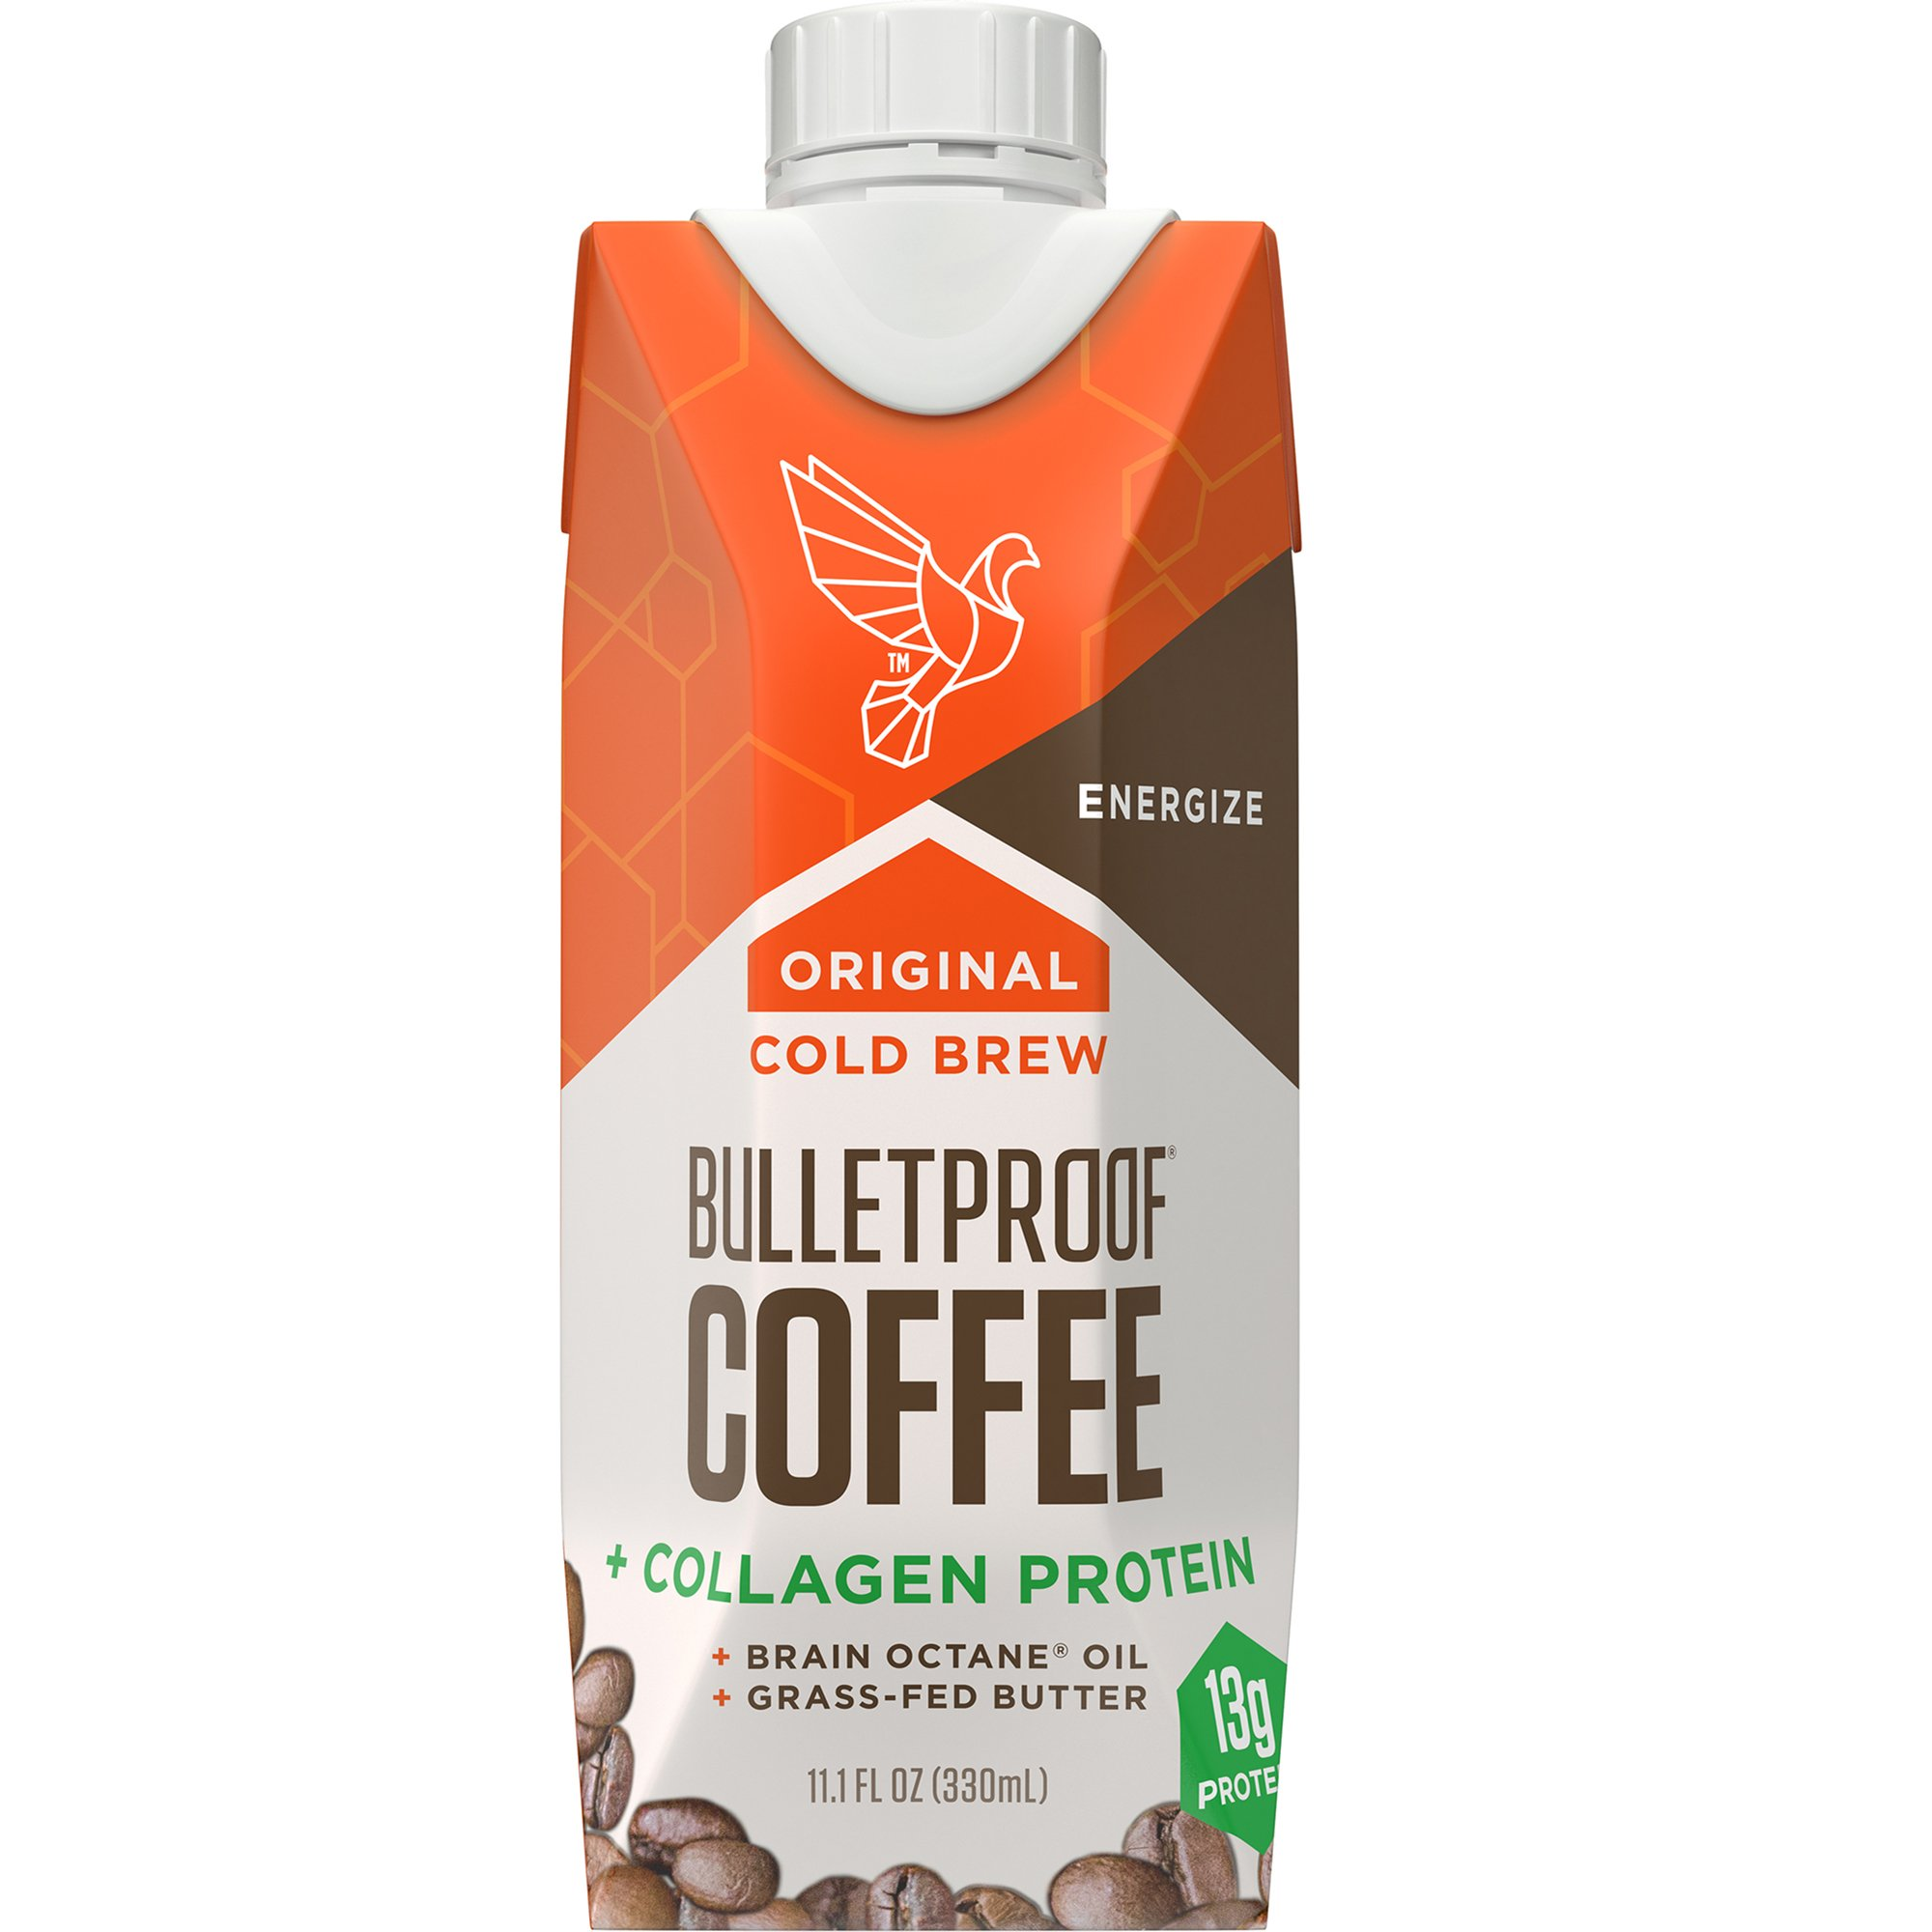 Bulletproof Coffee Cold Brew, Help Promote Energy Without the Sugar Crash, Original + Collagen Protein (12 Pack) by Bulletproof